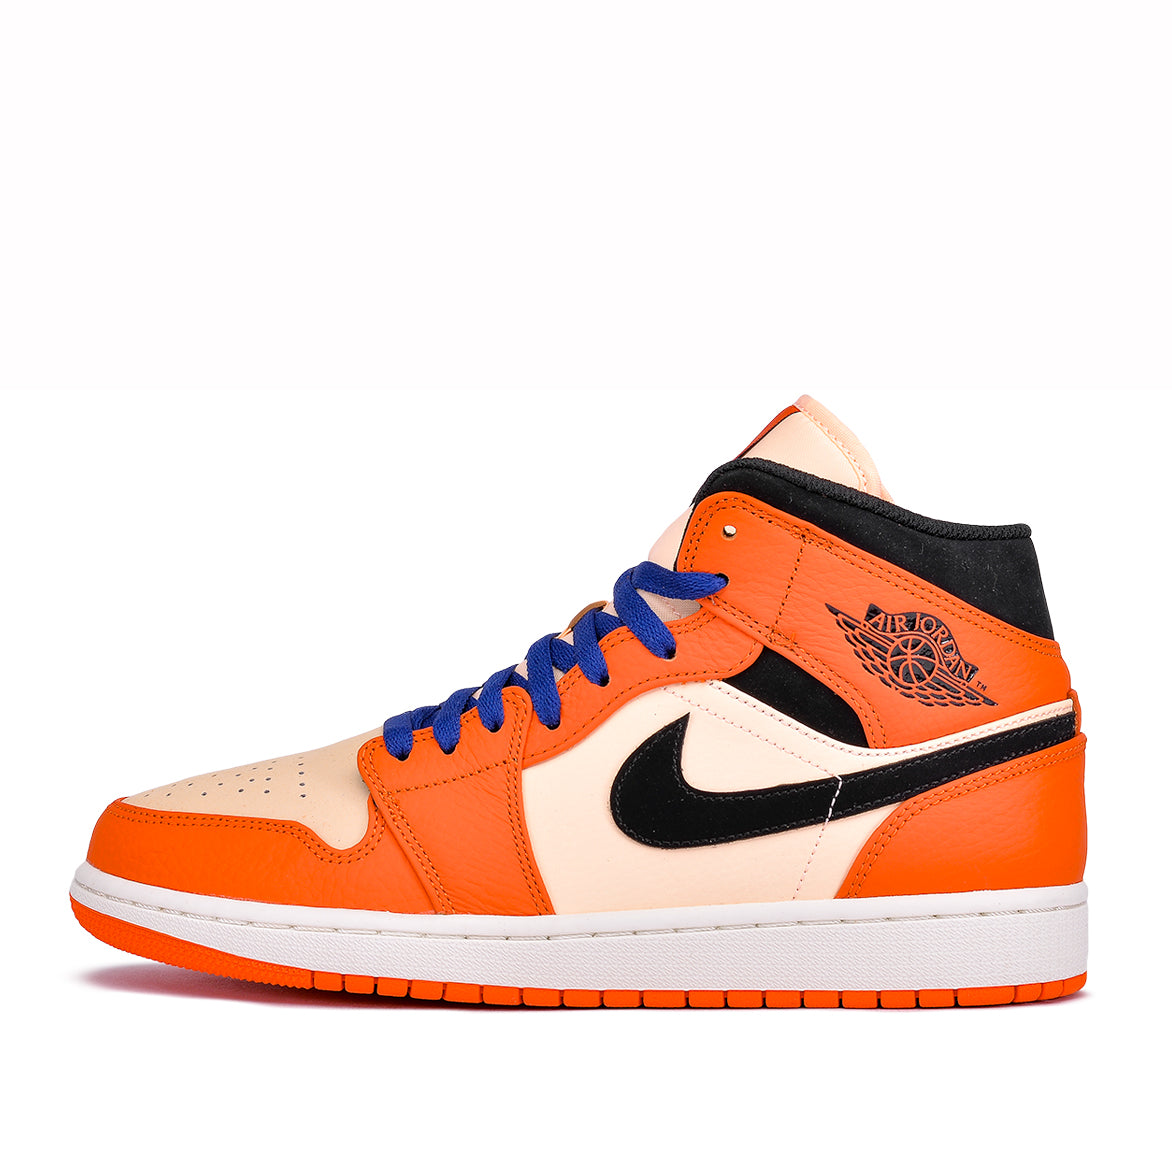 new product df8c4 bd155 AIR JORDAN 1 MID SE - TEAM ORANGE / BLACK / WHITE